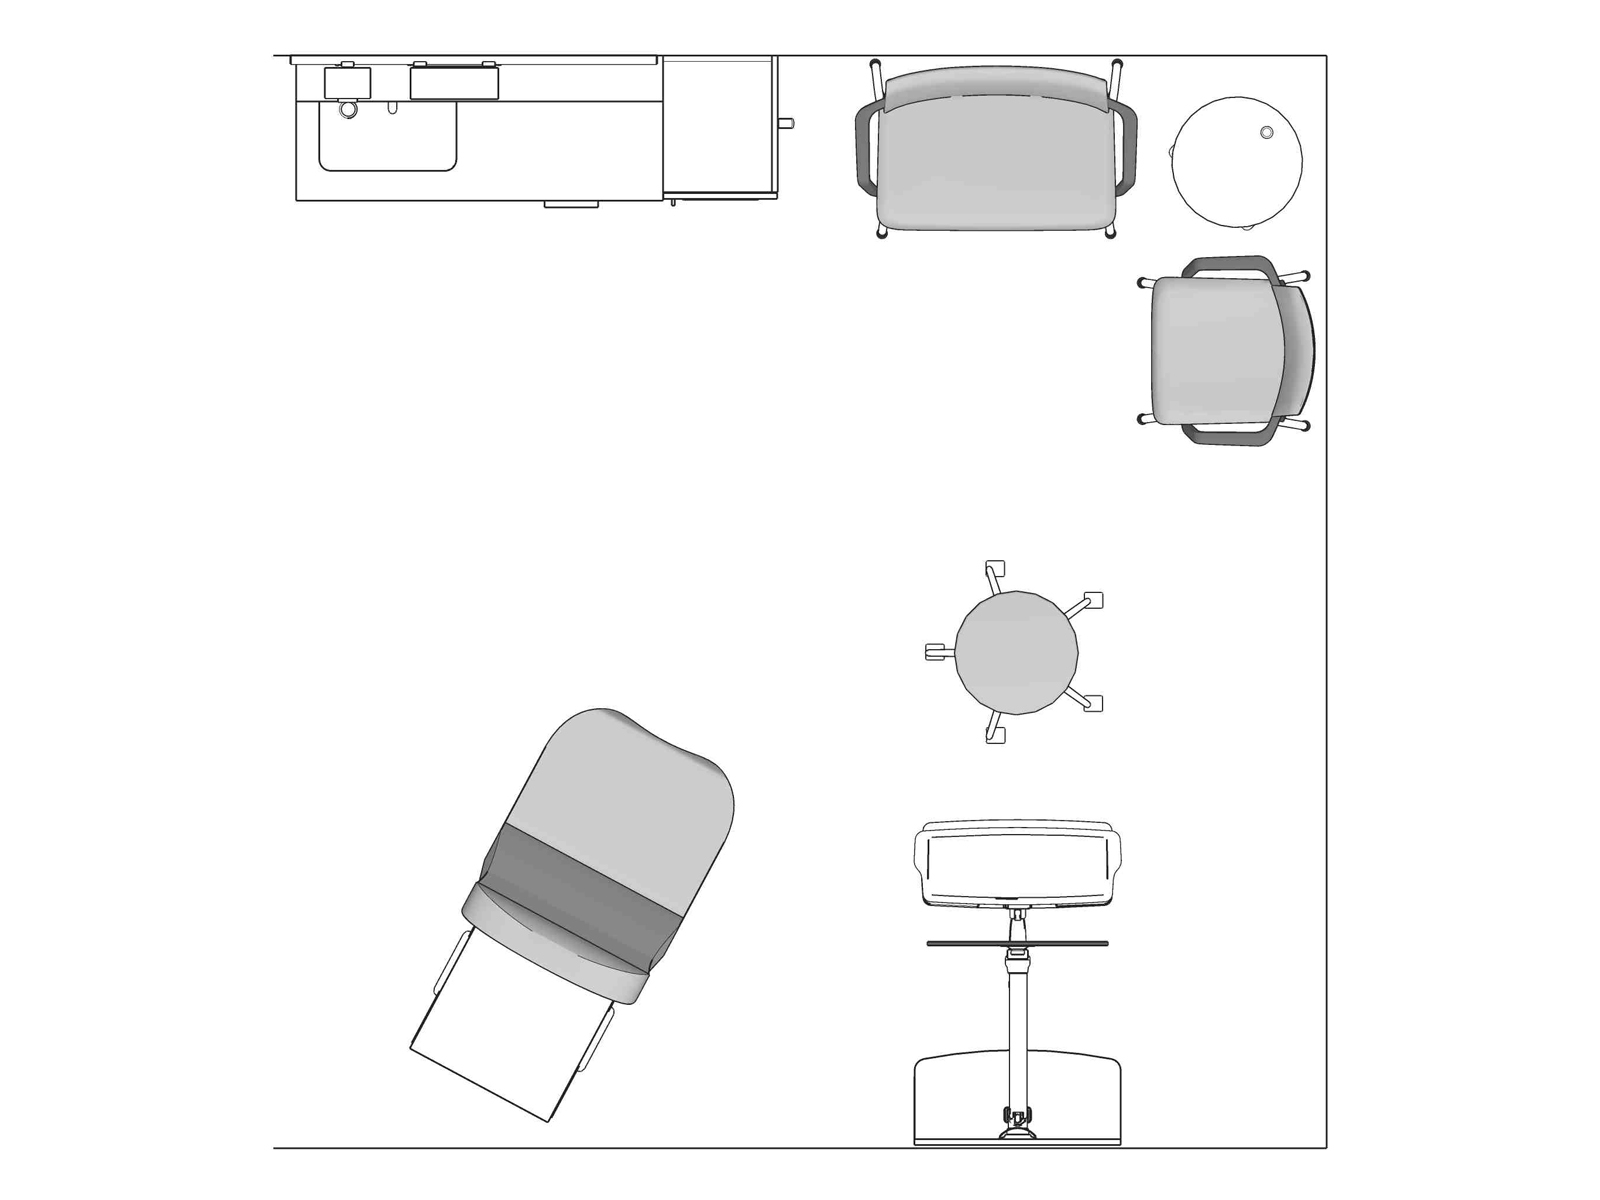 A line drawing viewed from above - Exam Room 001